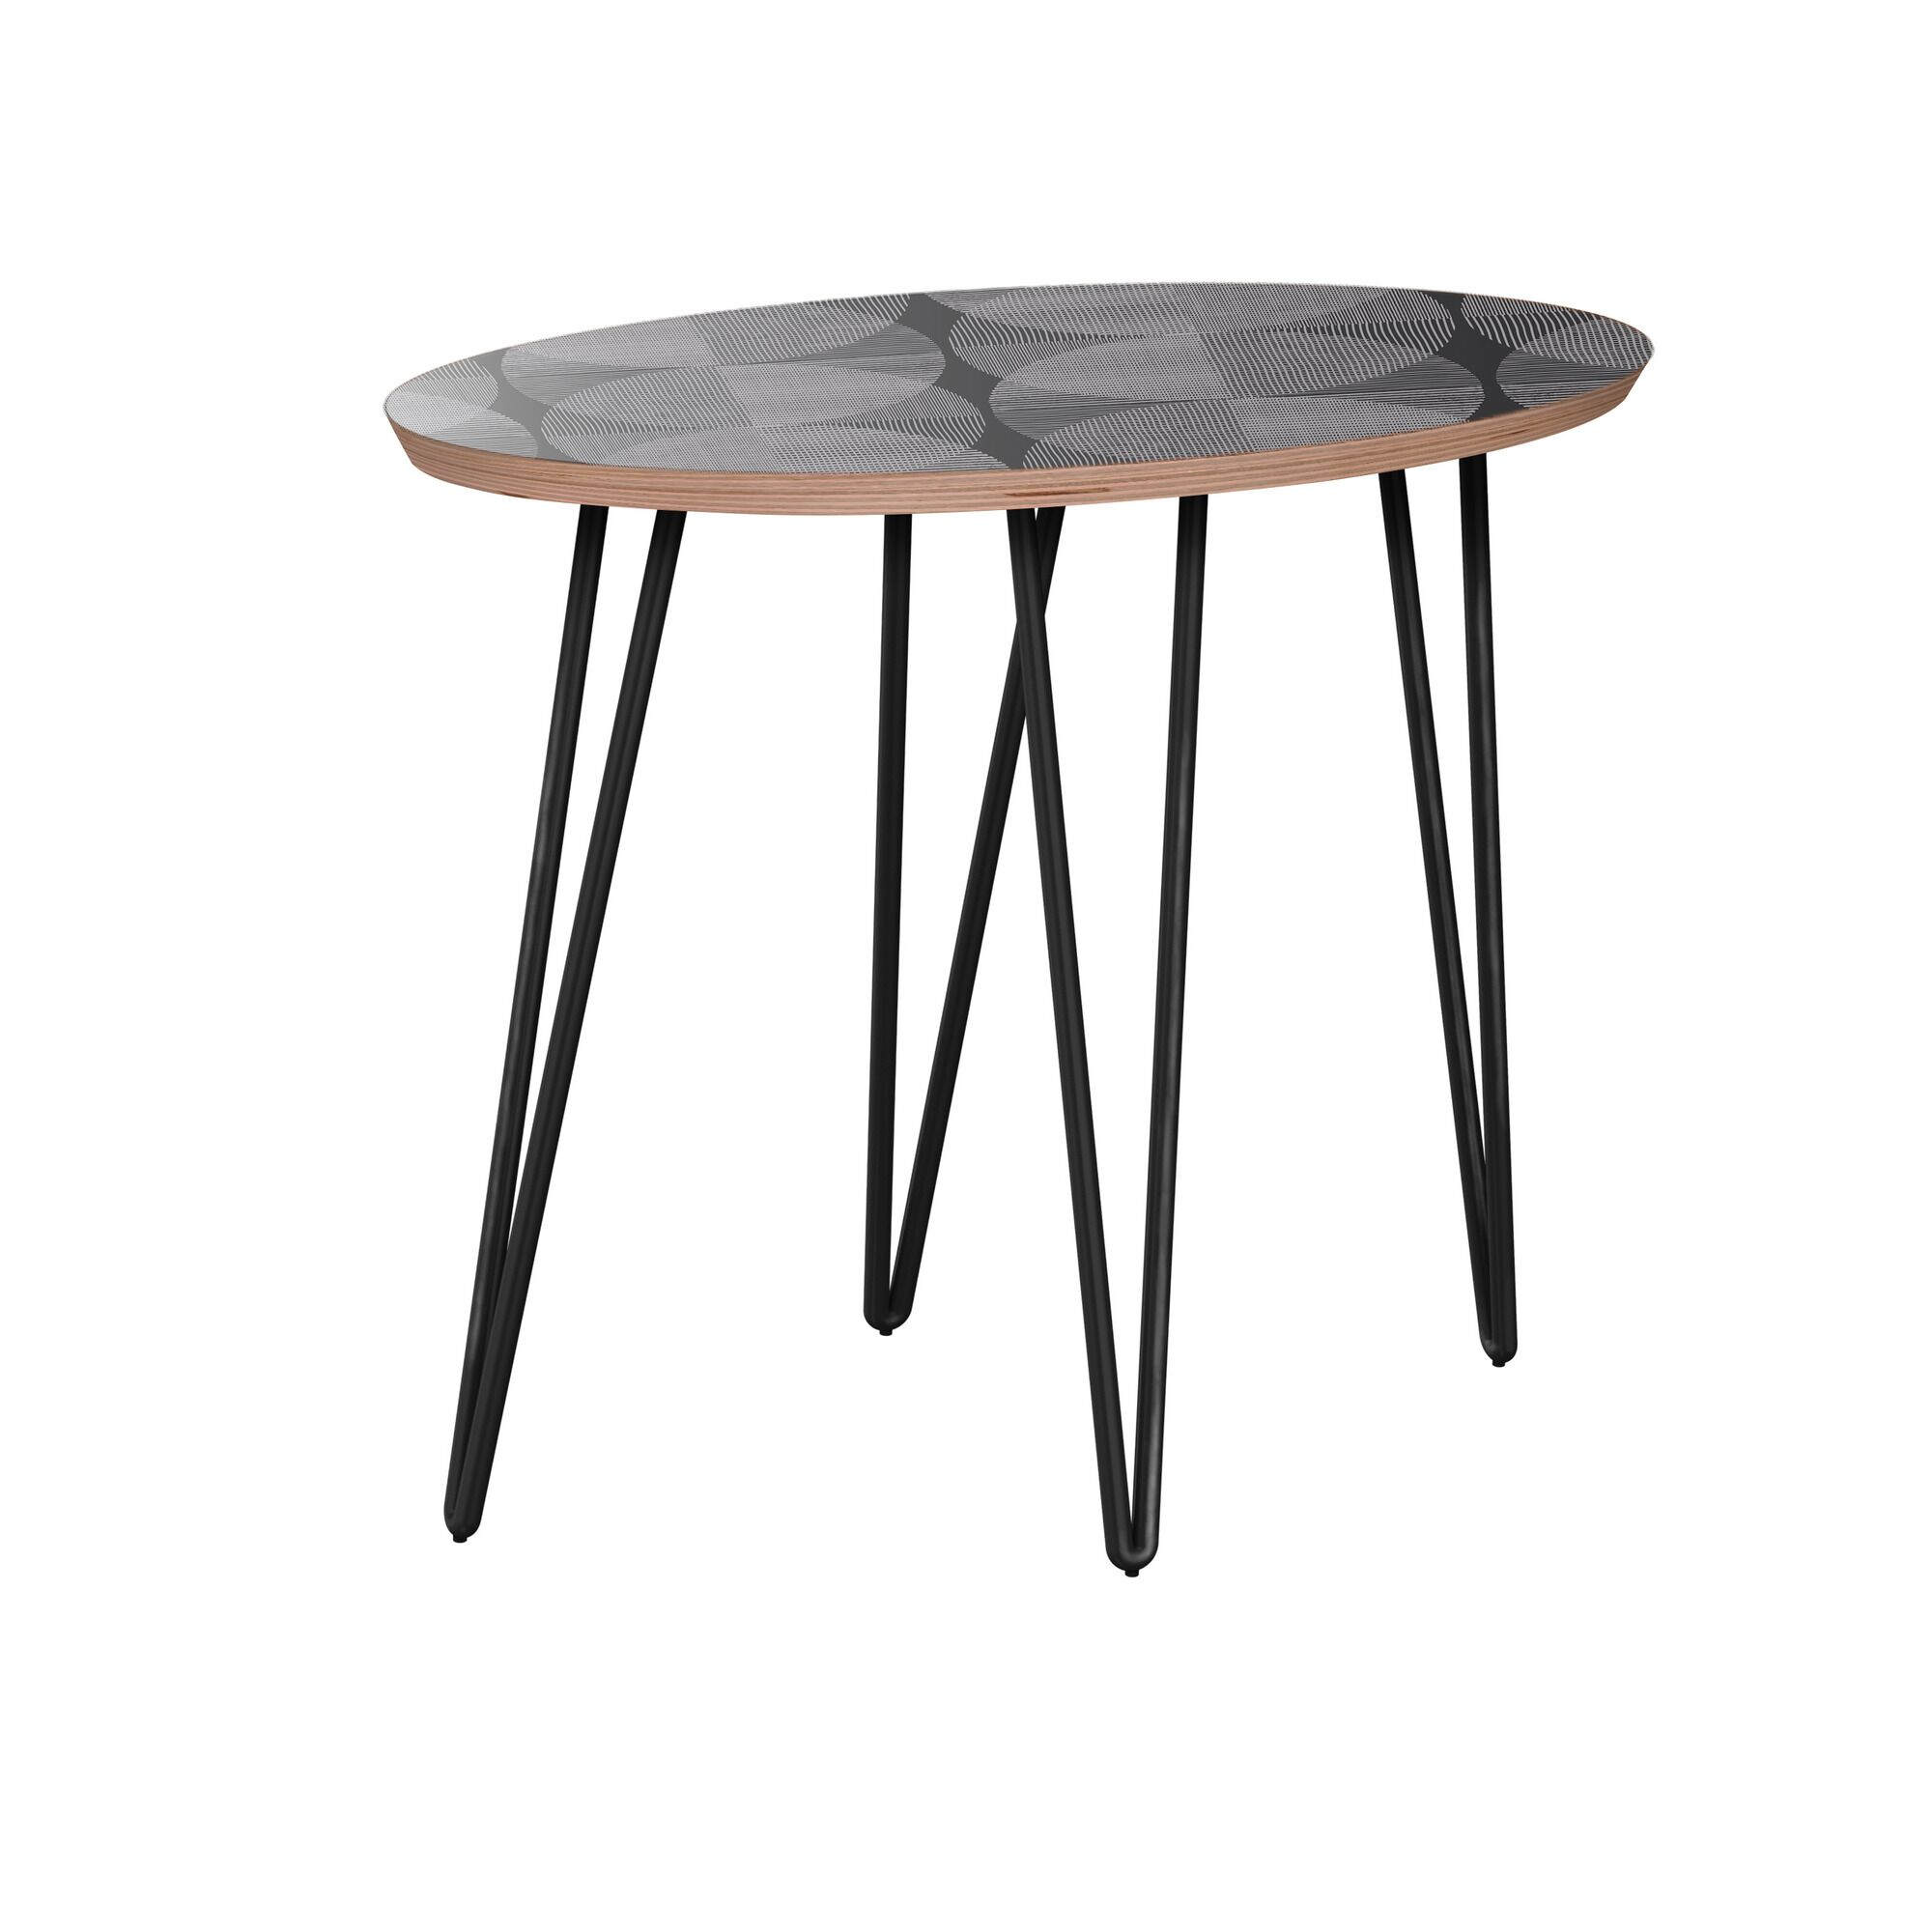 Kimberlee End Table Table Base Color: Black, Table Top Color: Walnut